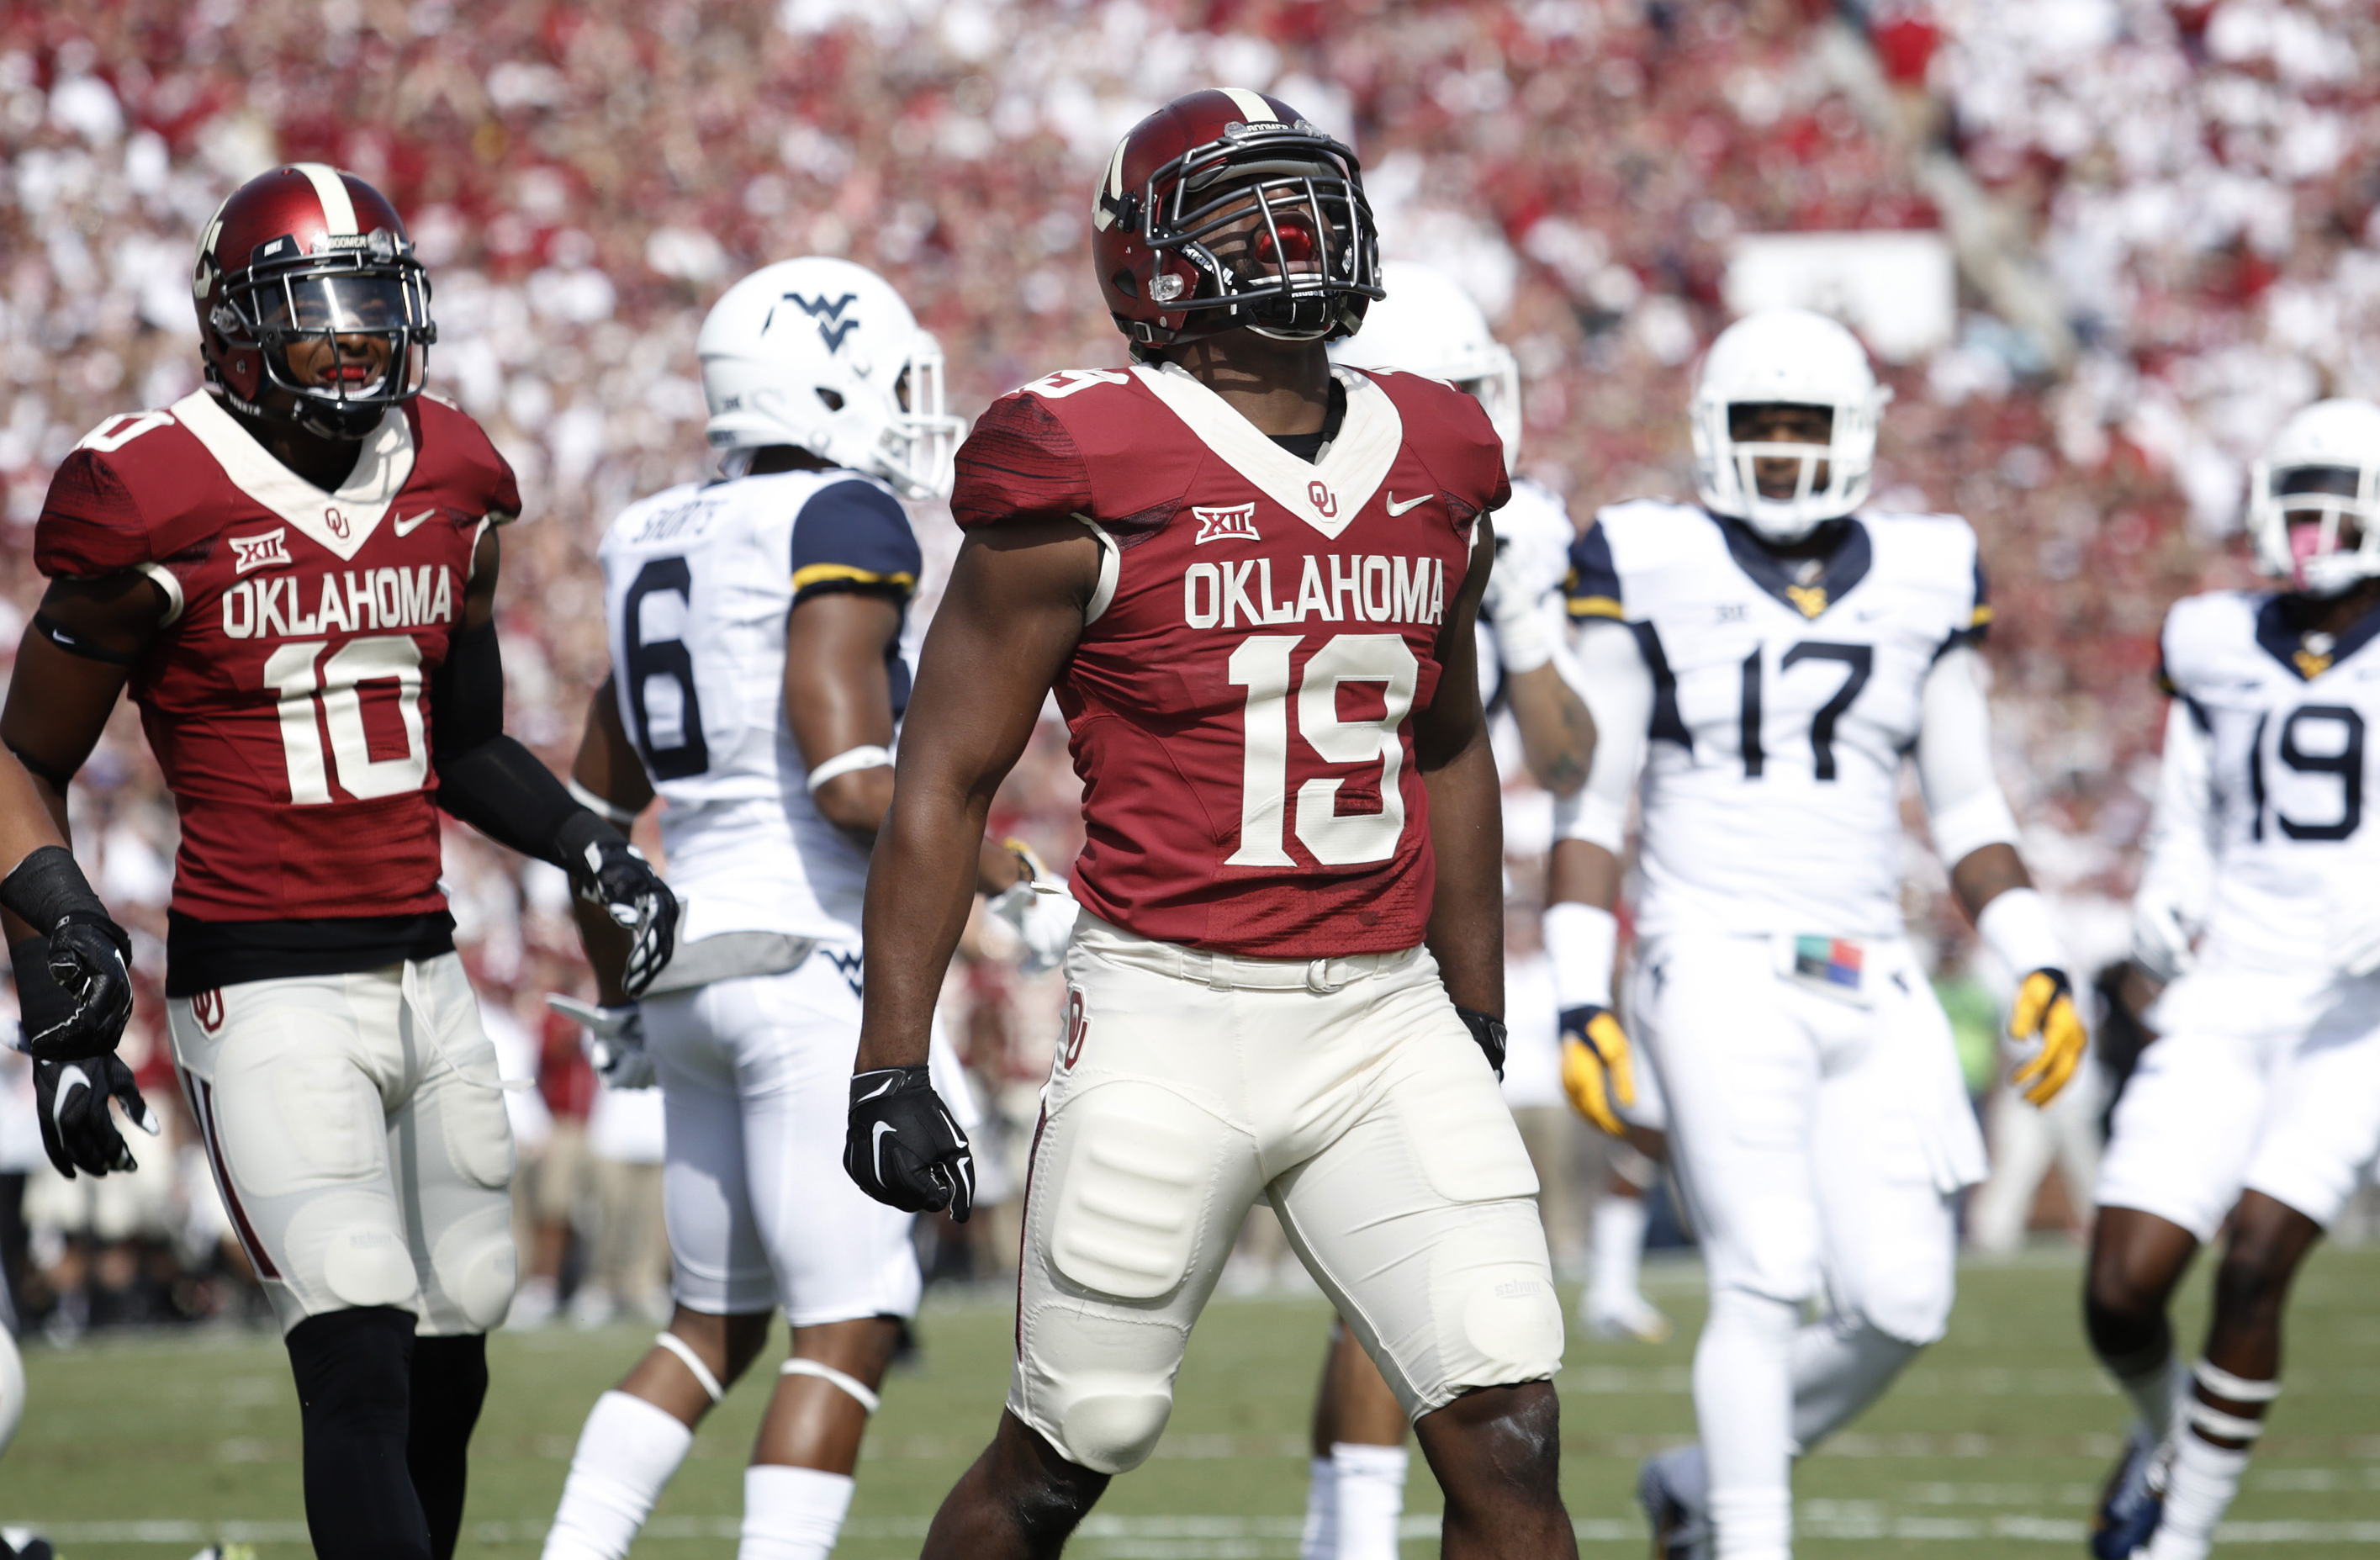 NORMAN, OK - OCTOBER 3:  Linebacker Eric Striker #19 of the Oklahoma Sooners celebrates a quarterback sack against the West Virginia Mountaineers October 3, 2015 at Gaylord Family-Oklahoma Memorial Stadium in Norman, Oklahoma. Oklahoma defeated West Virginia 44-24.(Photo by Brett Deering/Getty Images)